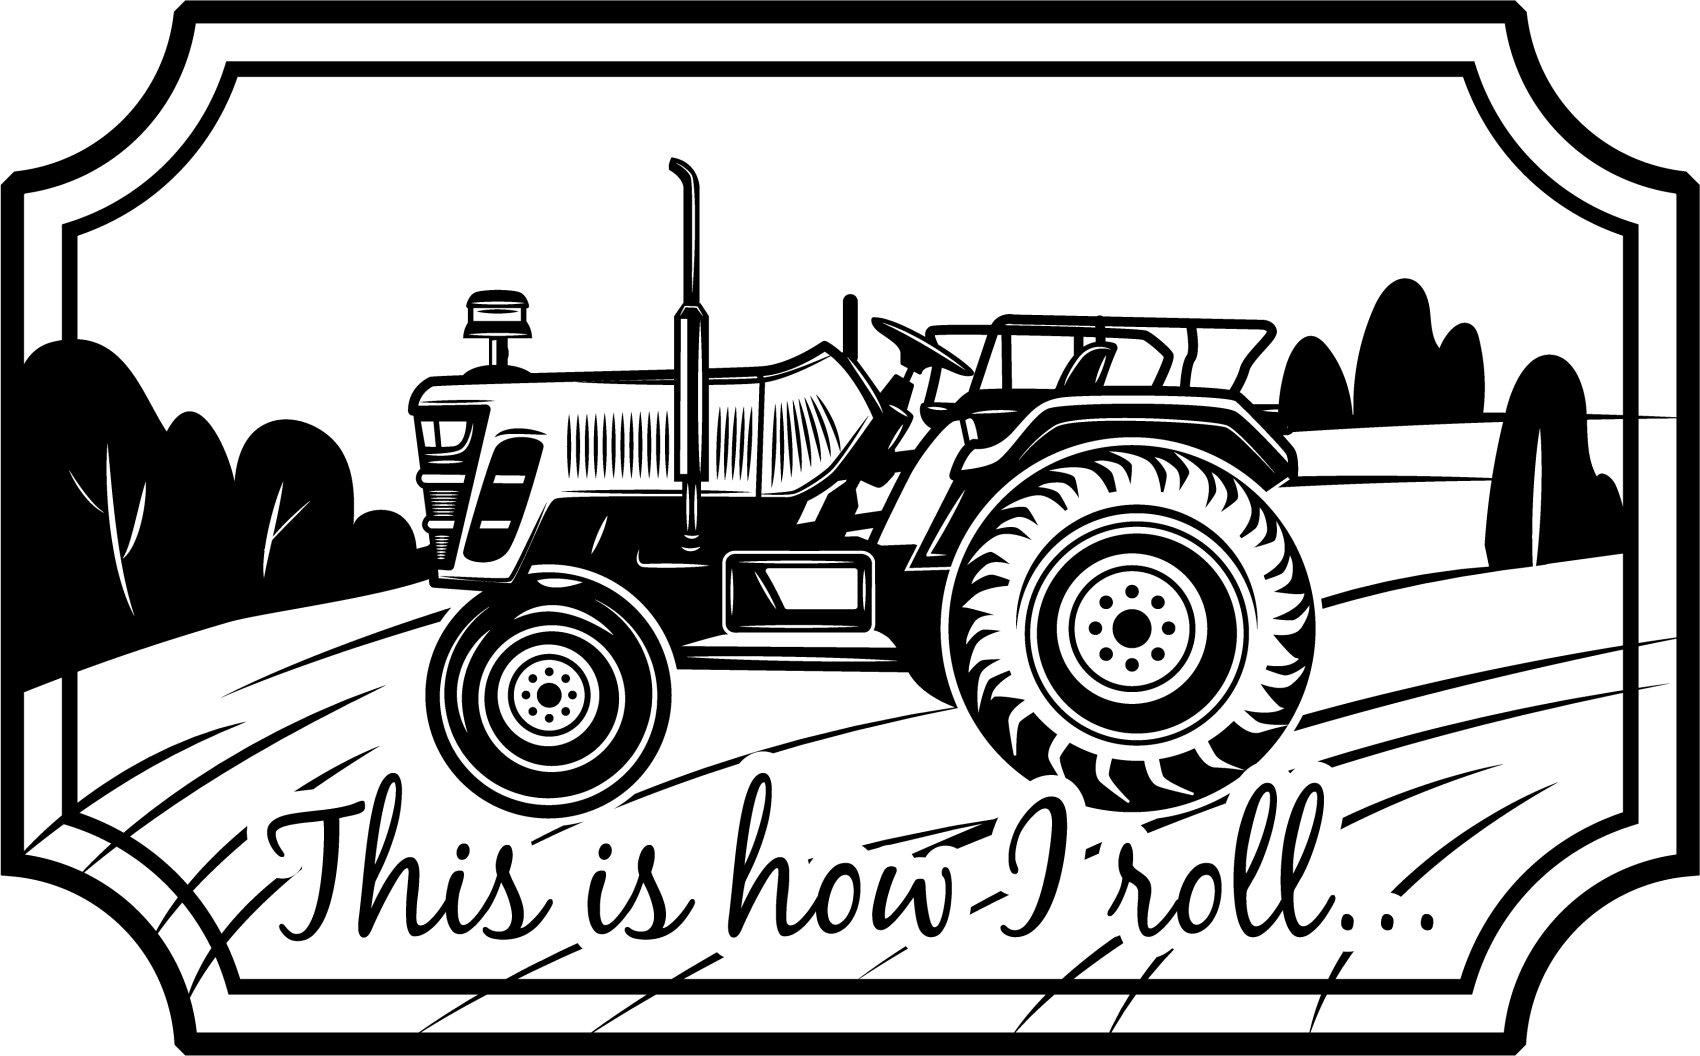 TenStickers. This is how I roll tractor bespoke vinyl rugs. Custom tractor vinyl rug design with an irregular shape. The vintage style carpet with tractor is inscribed with text that reads 'That's how we roll'.